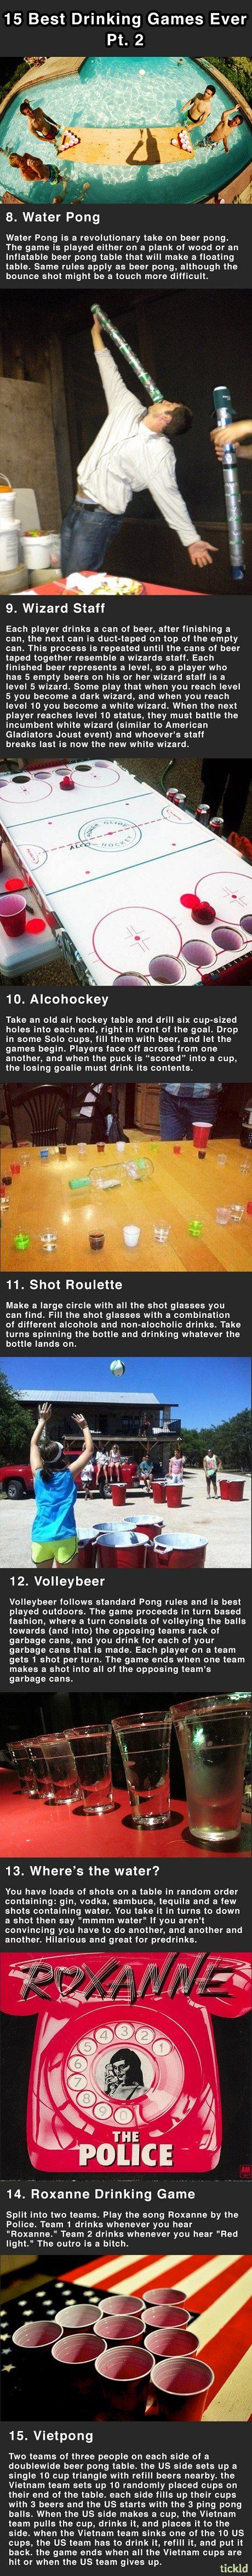 15 best drinking games part 2